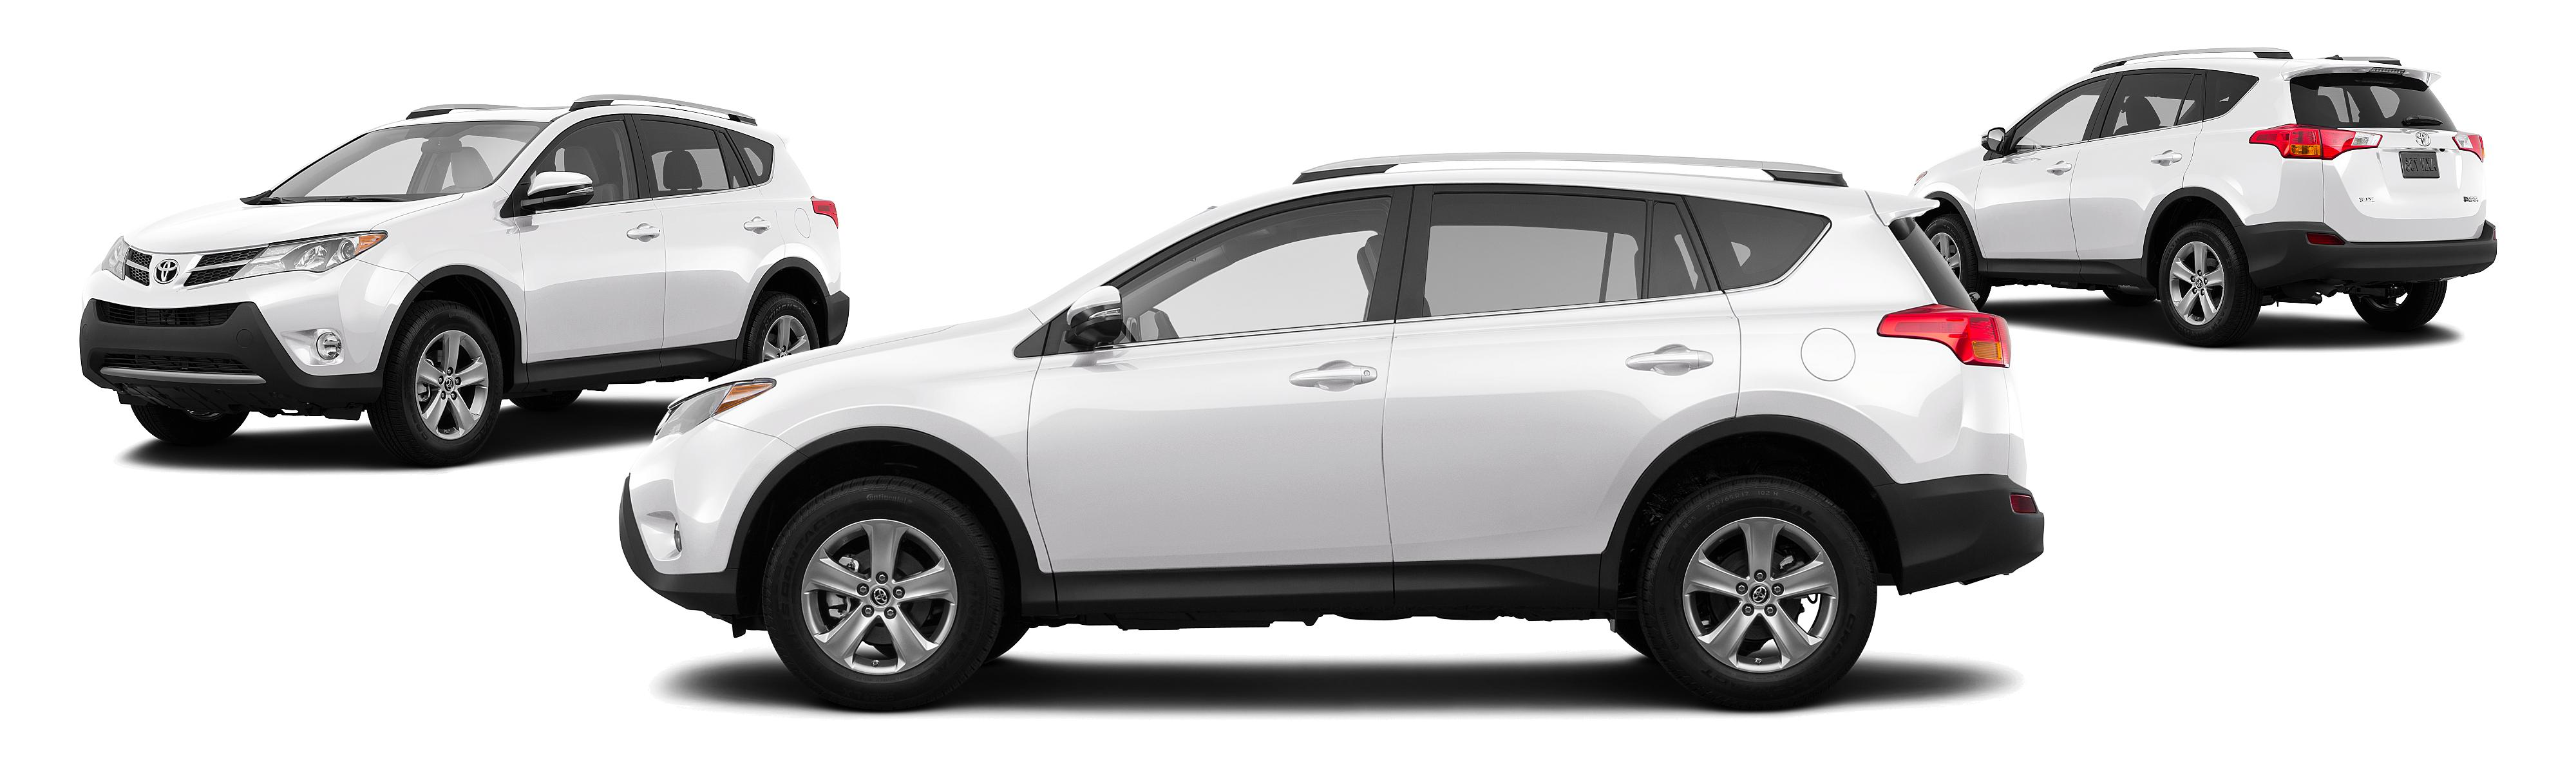 2015 toyota rav4 awd xle 4dr suv - research - groovecar